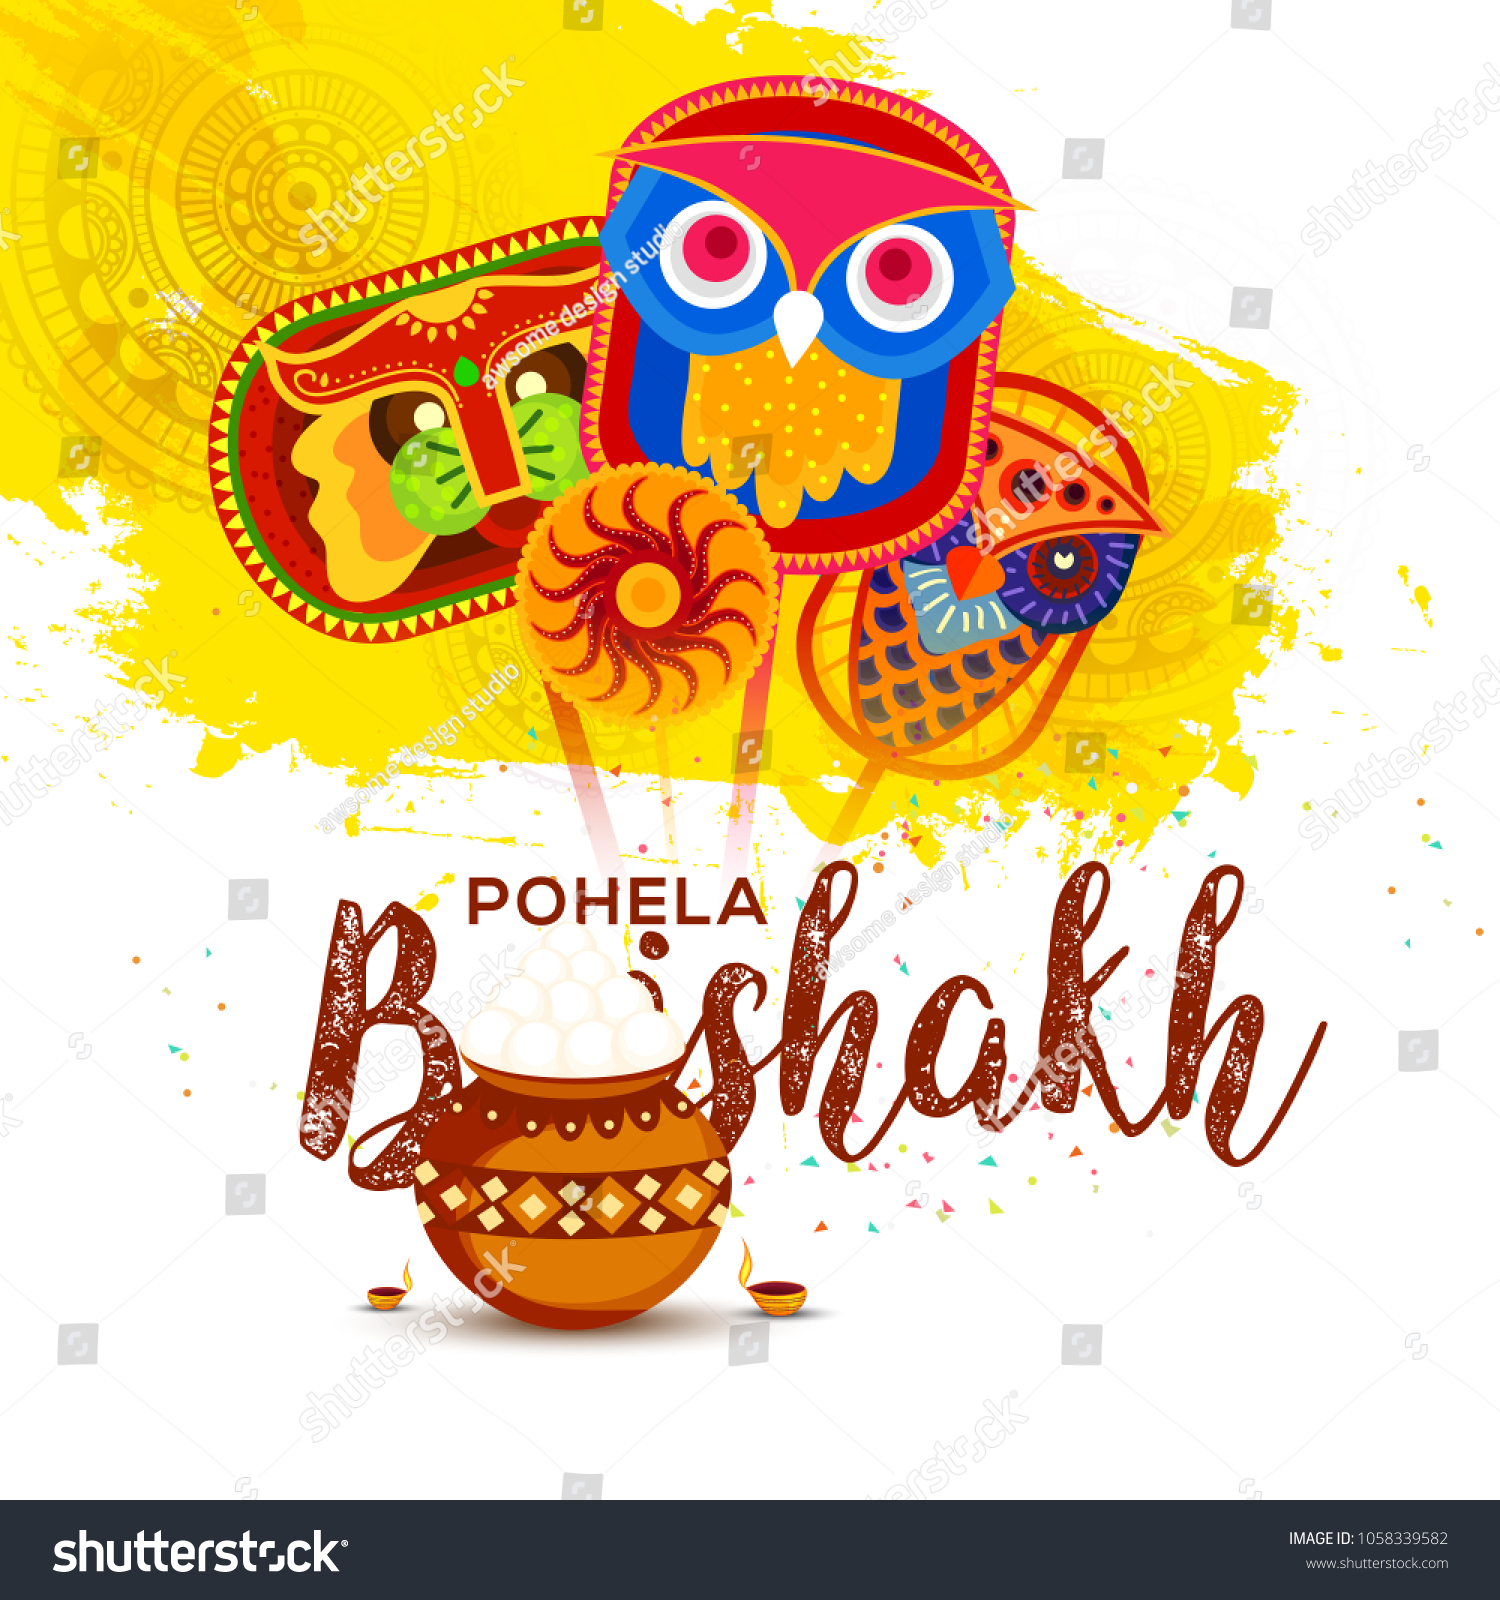 illustration of bengali new year pohela boishakh greeting card background